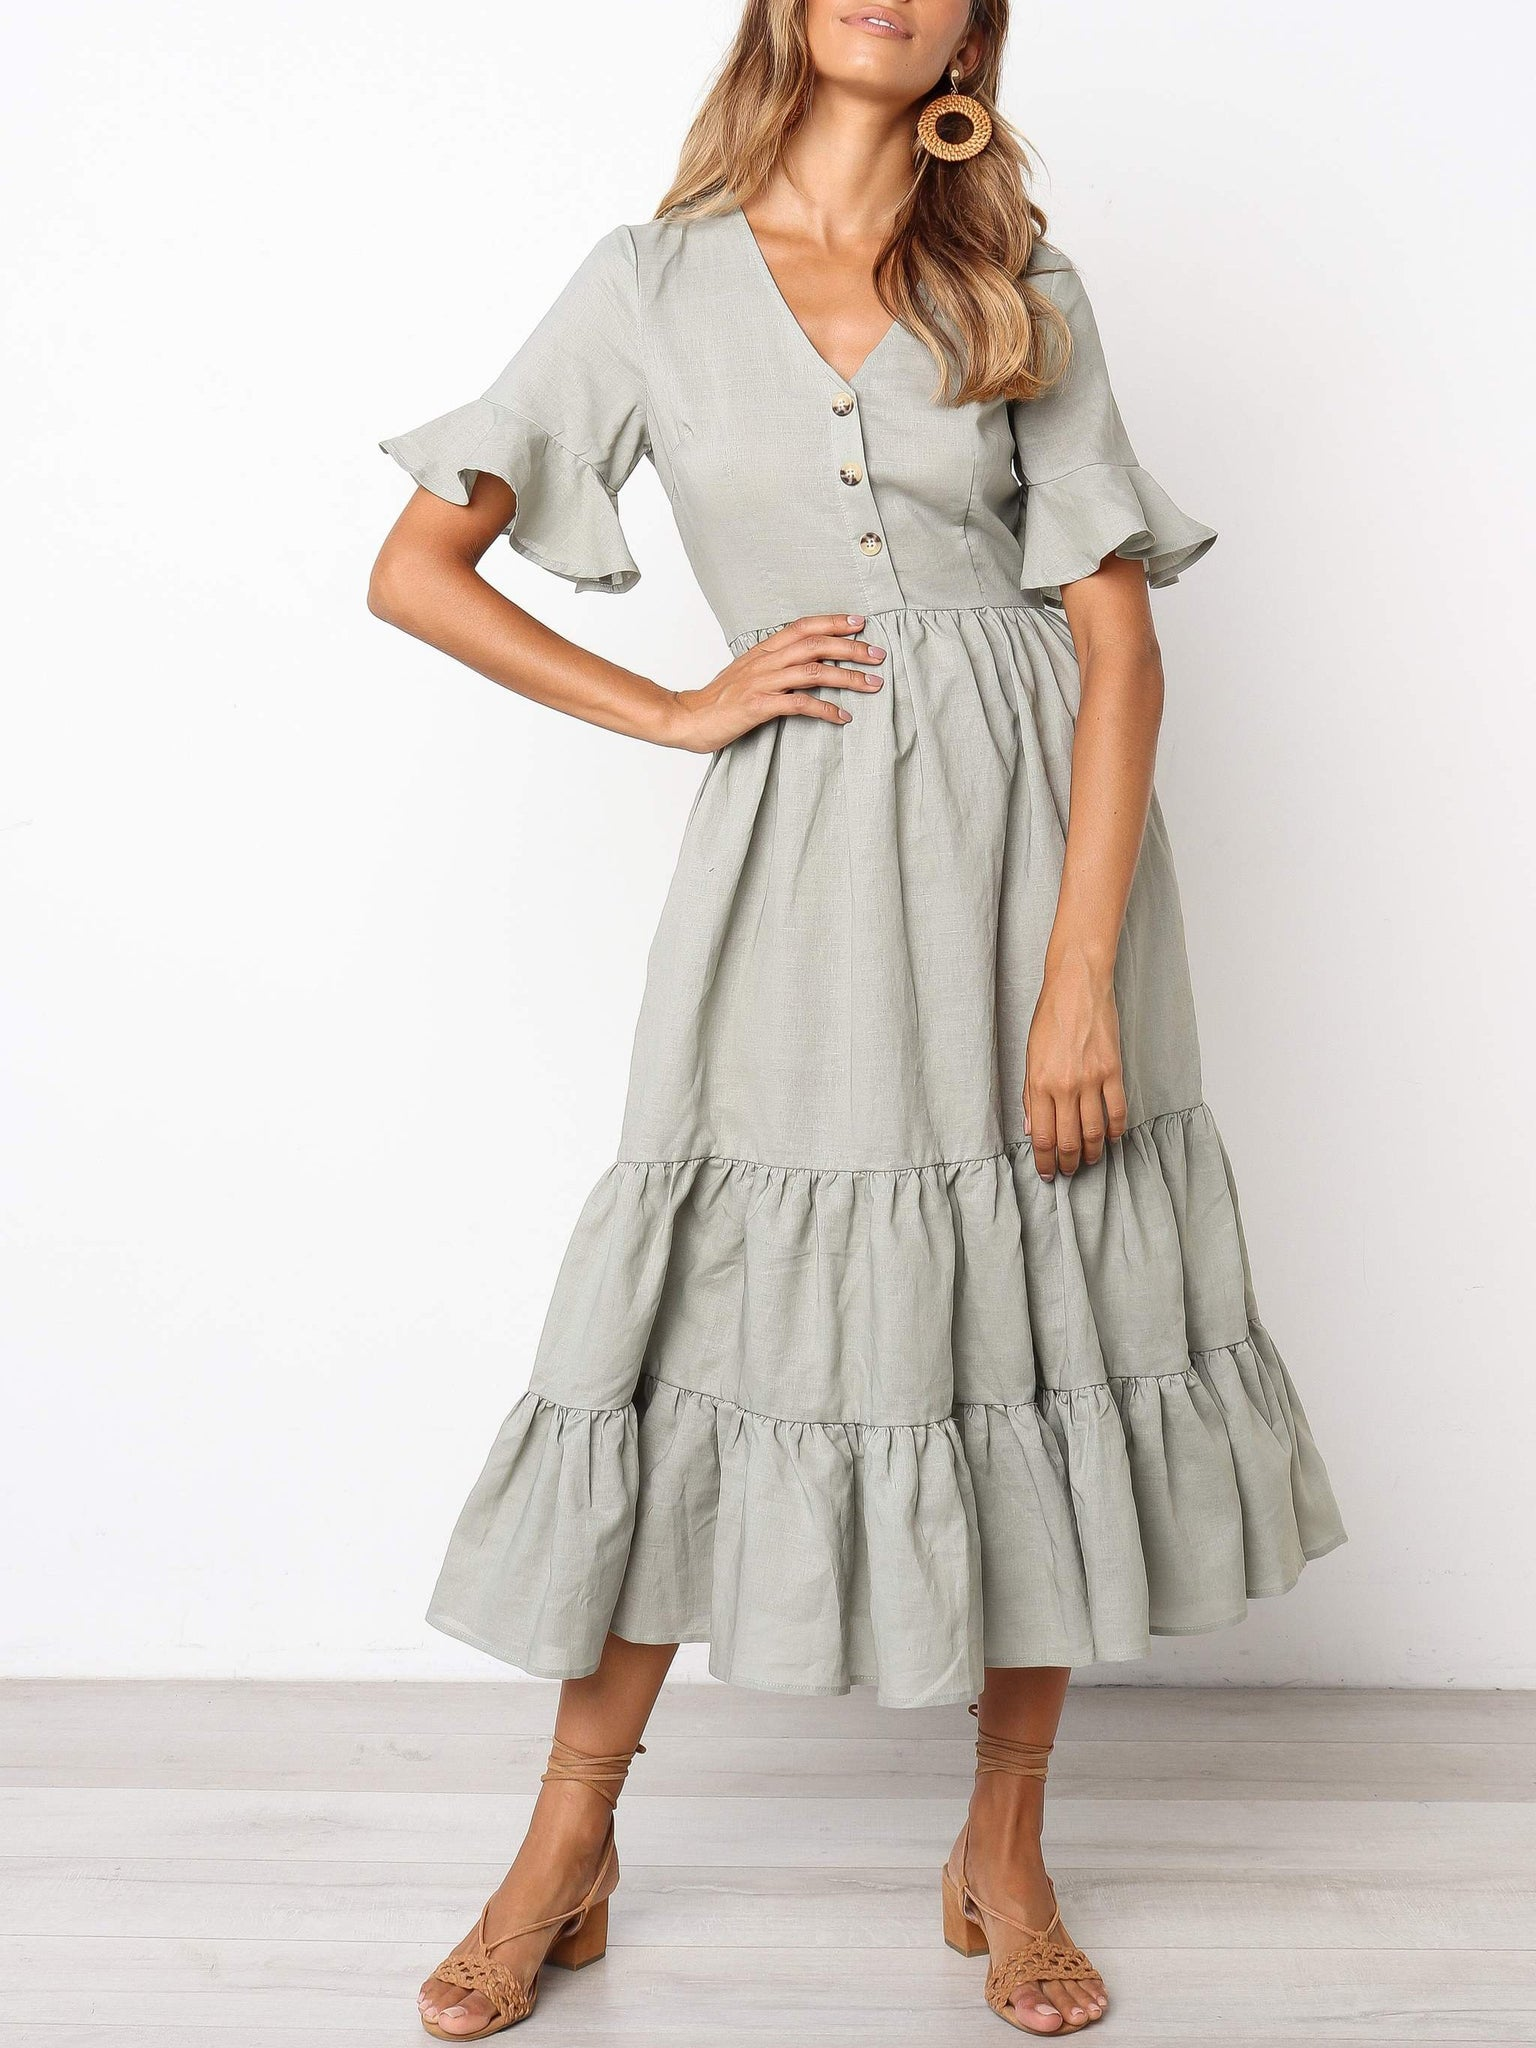 V-Neck Splicing Ruffled Buttoned Solid Color Dress